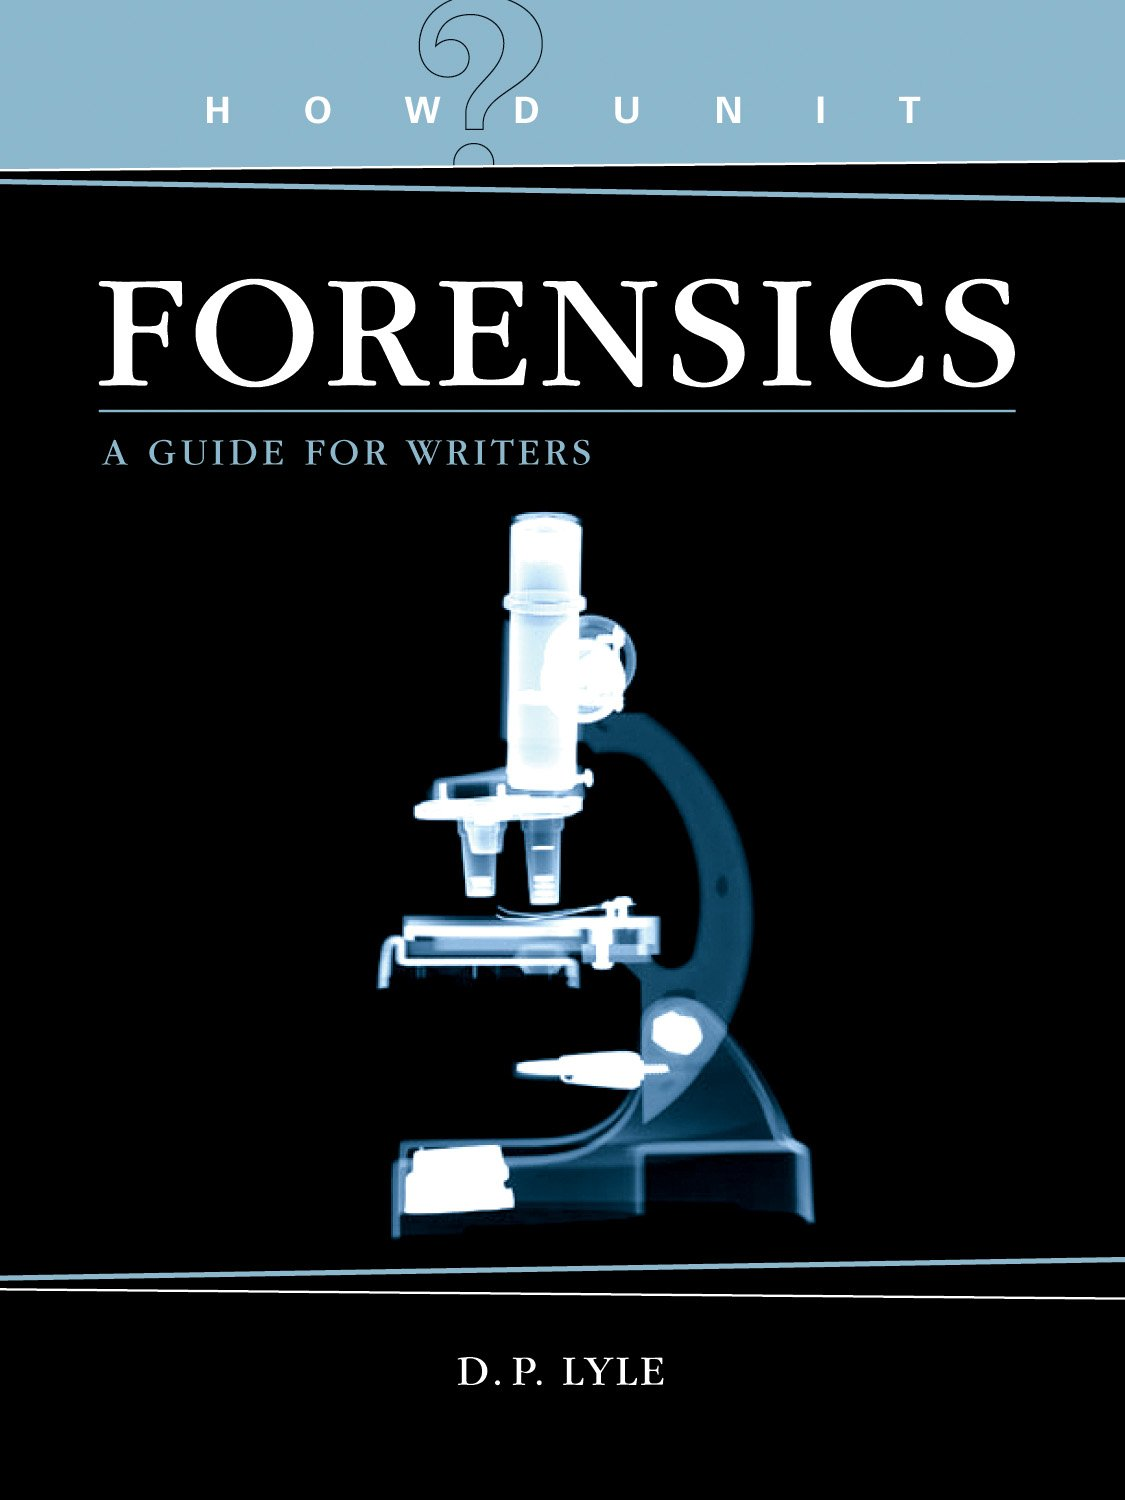 Howdunit Forensics by Writer's Digest